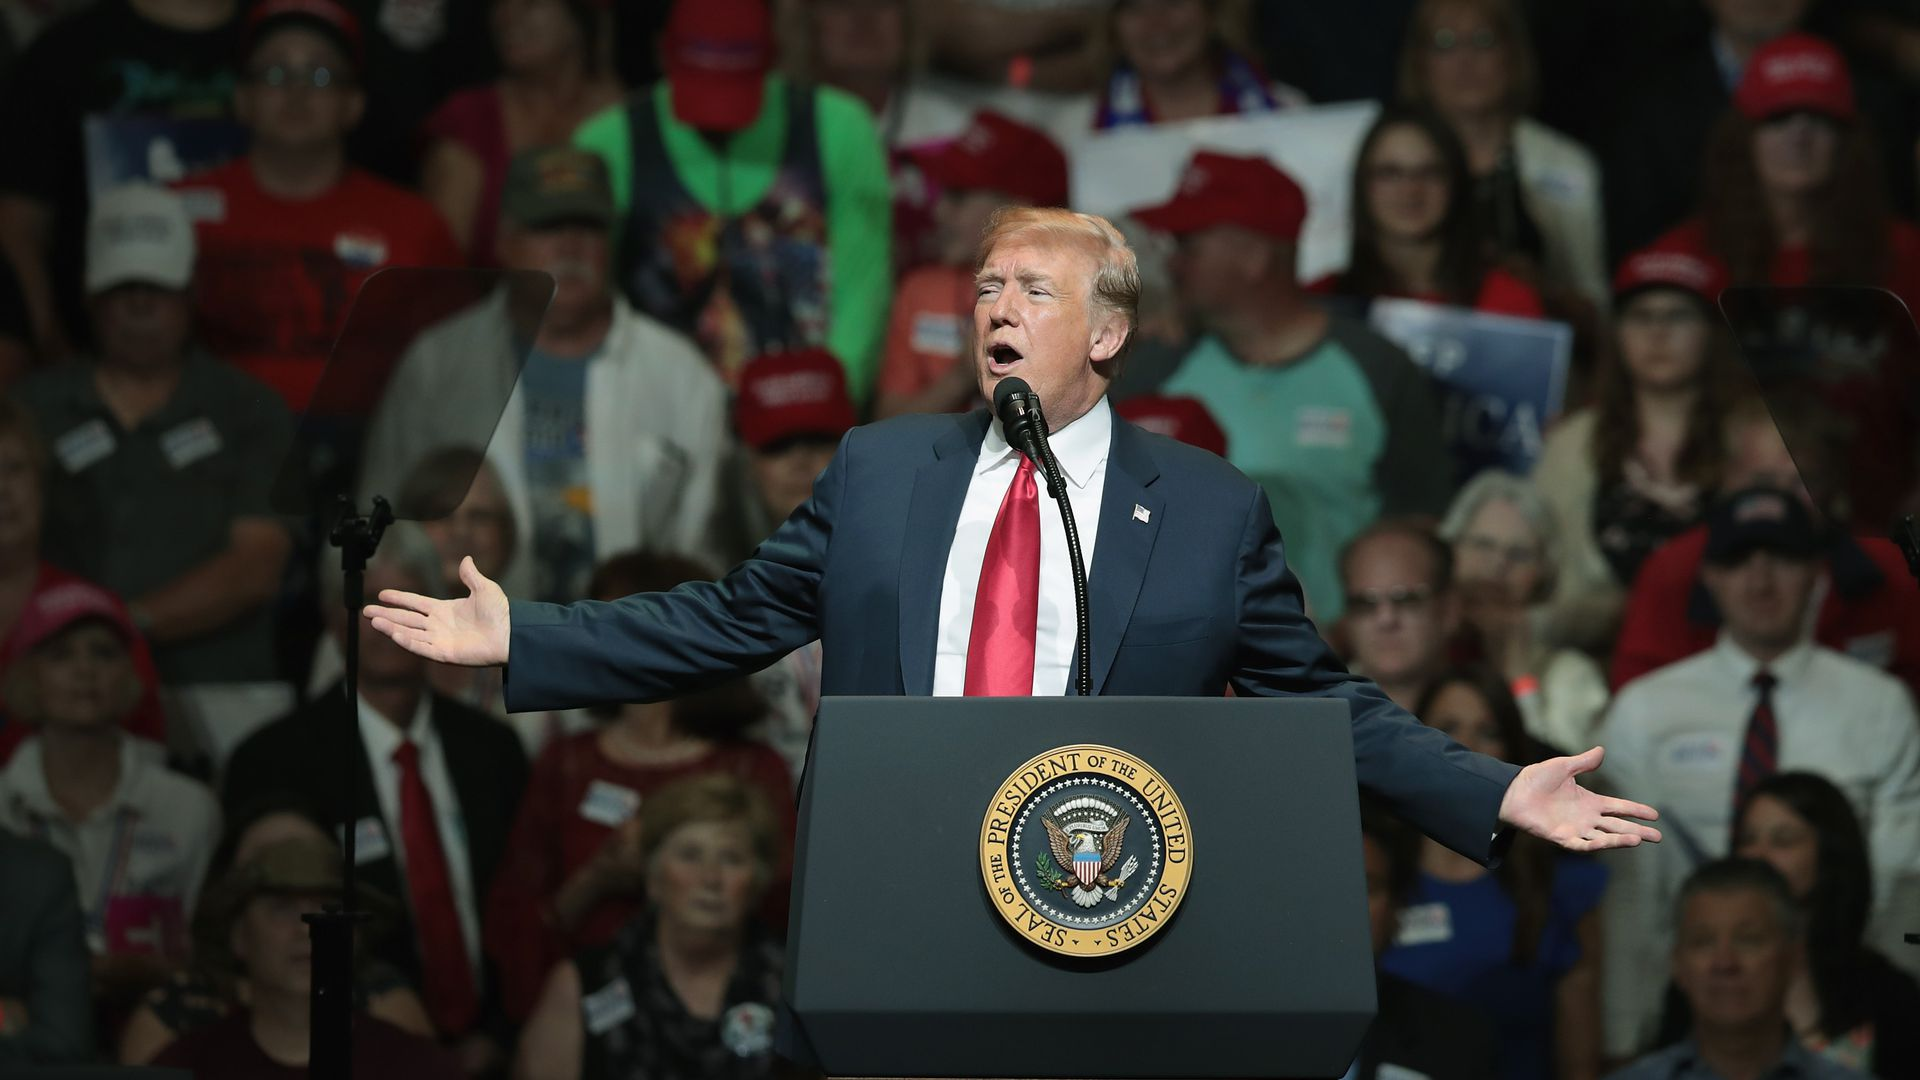 President Trump at a rally earlier this week. A number of his top officials have threatened to leave the White House.